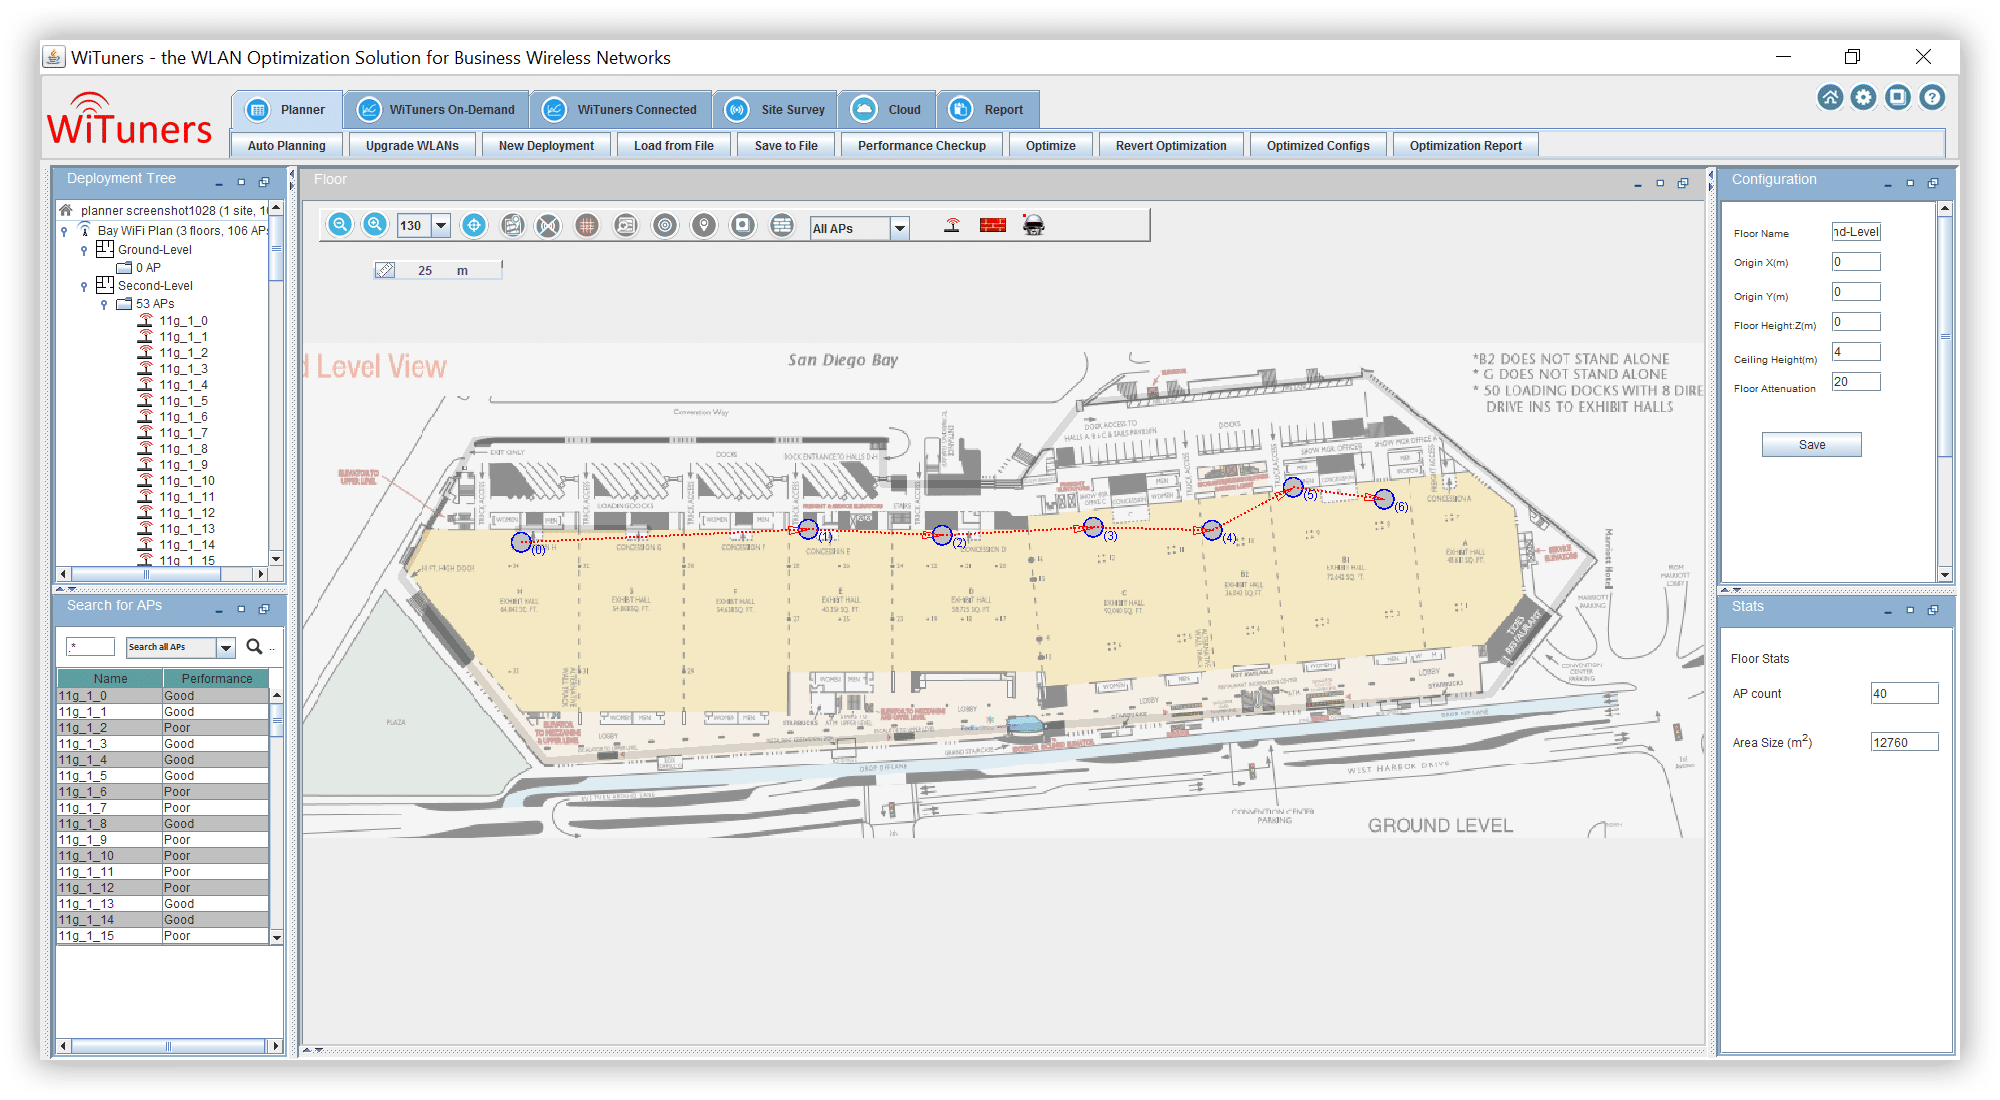 predefine-survey-point-for-remote-project in WiFi planning software